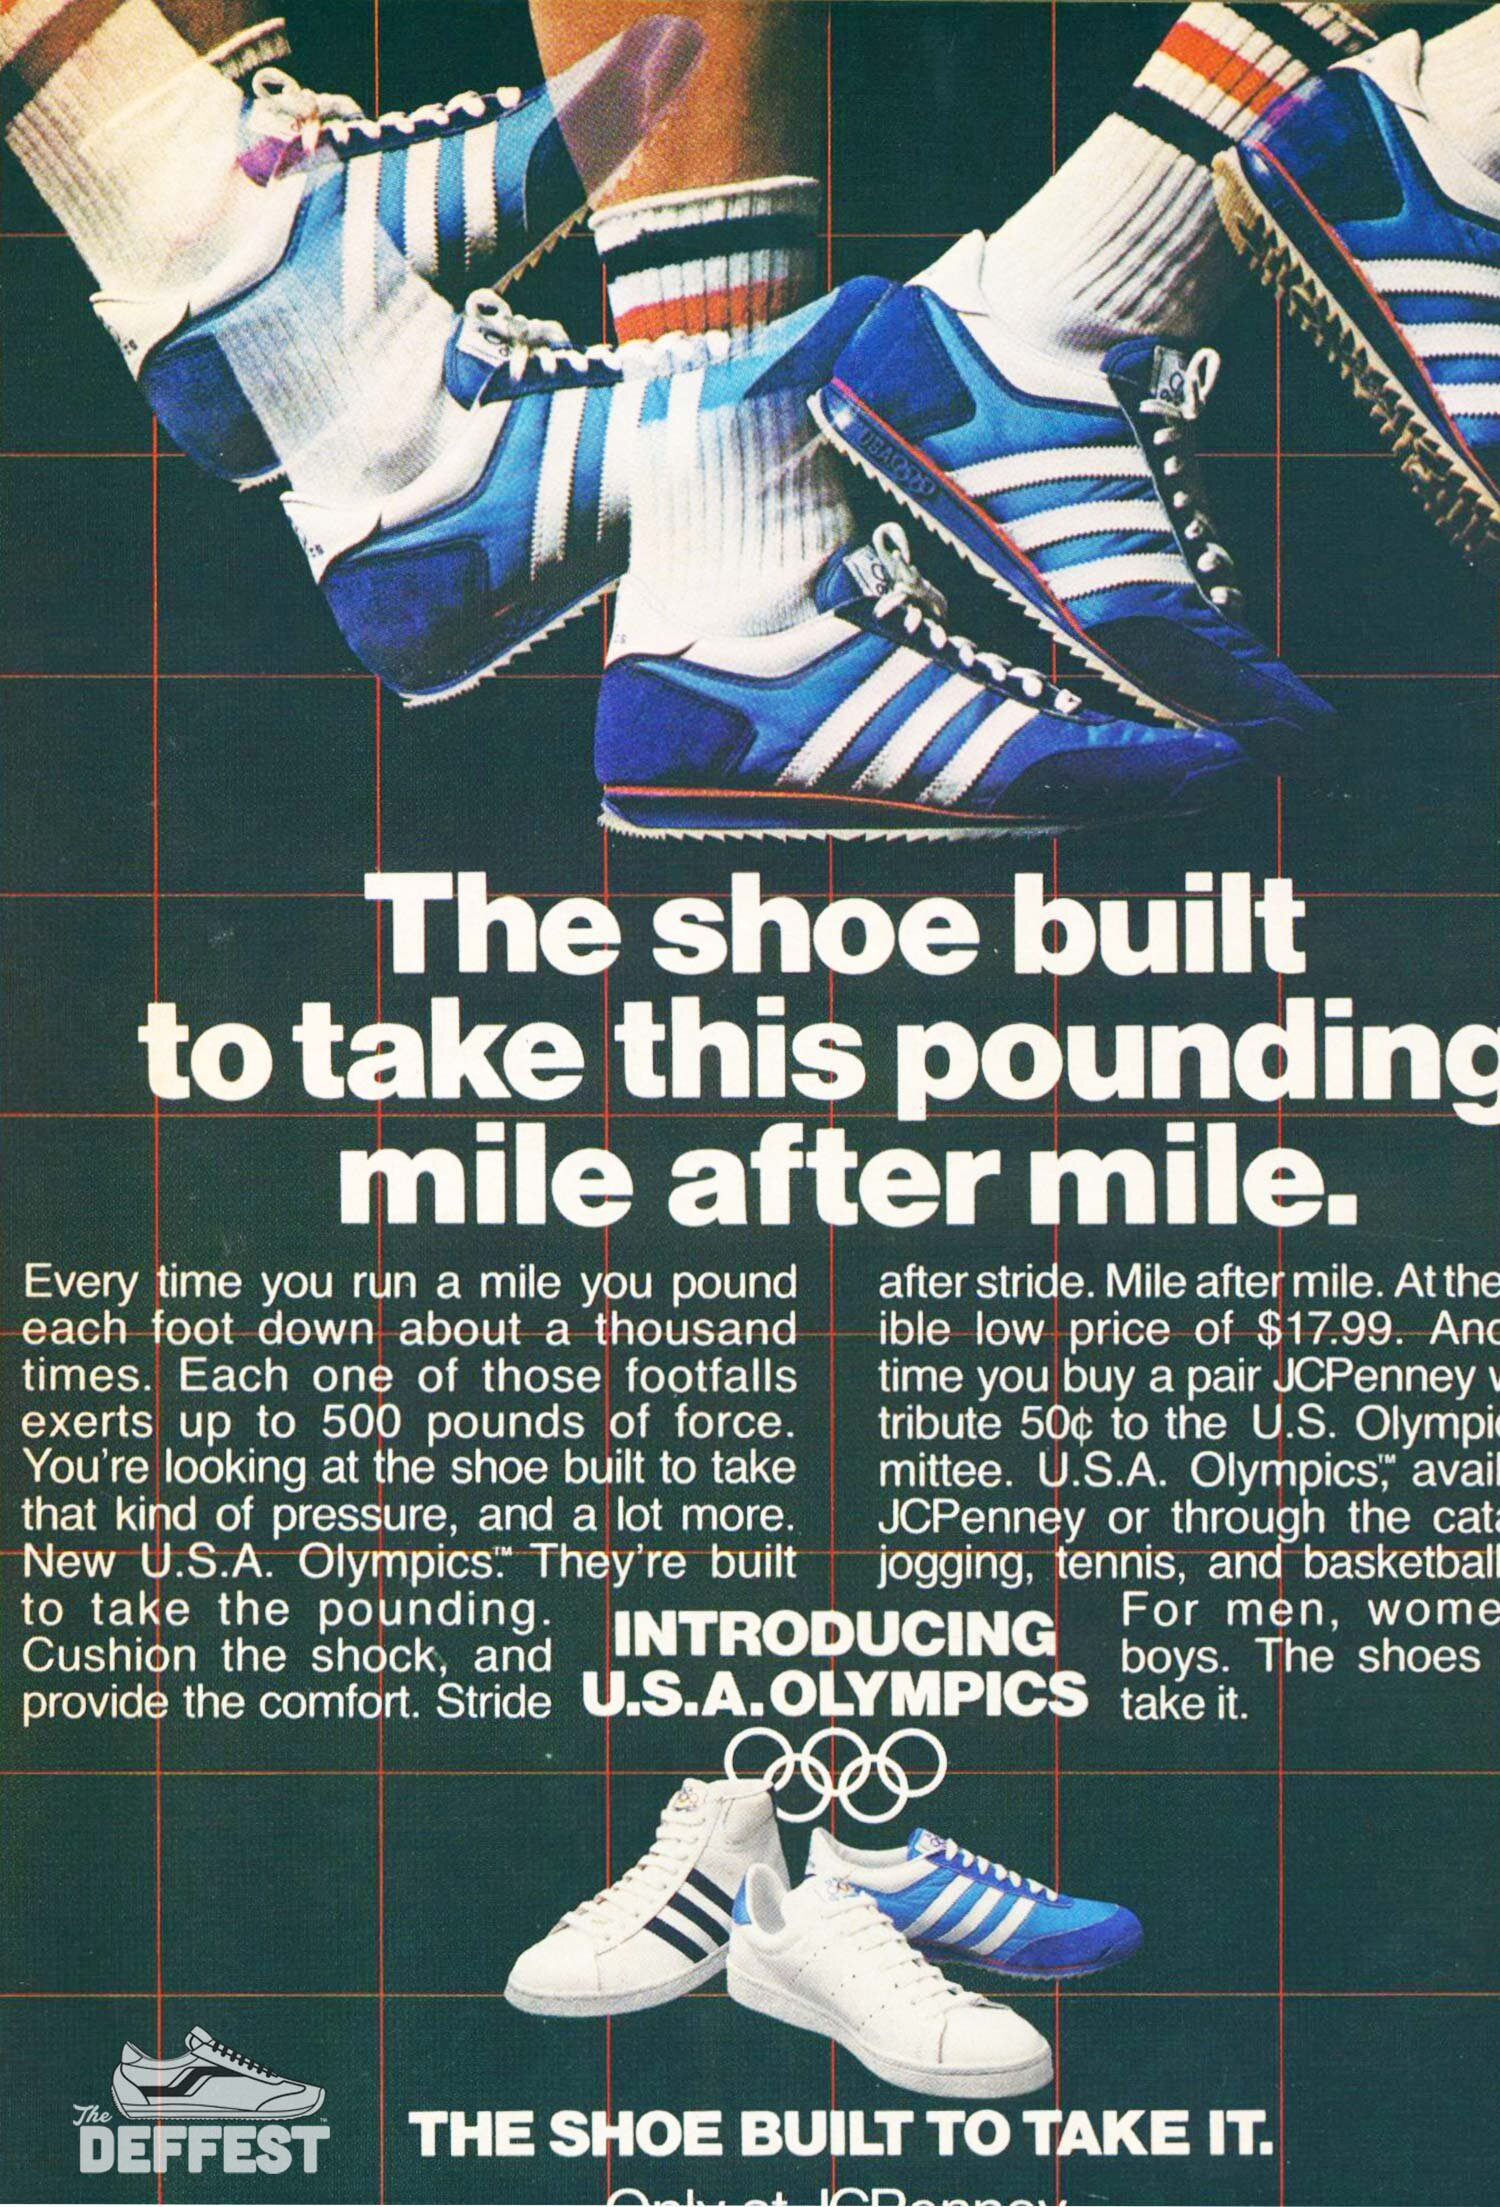 The Deffest A Vintage And Retro Sneaker Blog Jcpenney Usa Olympics 1979 Vintage 3 Stripes Sneaker Ad